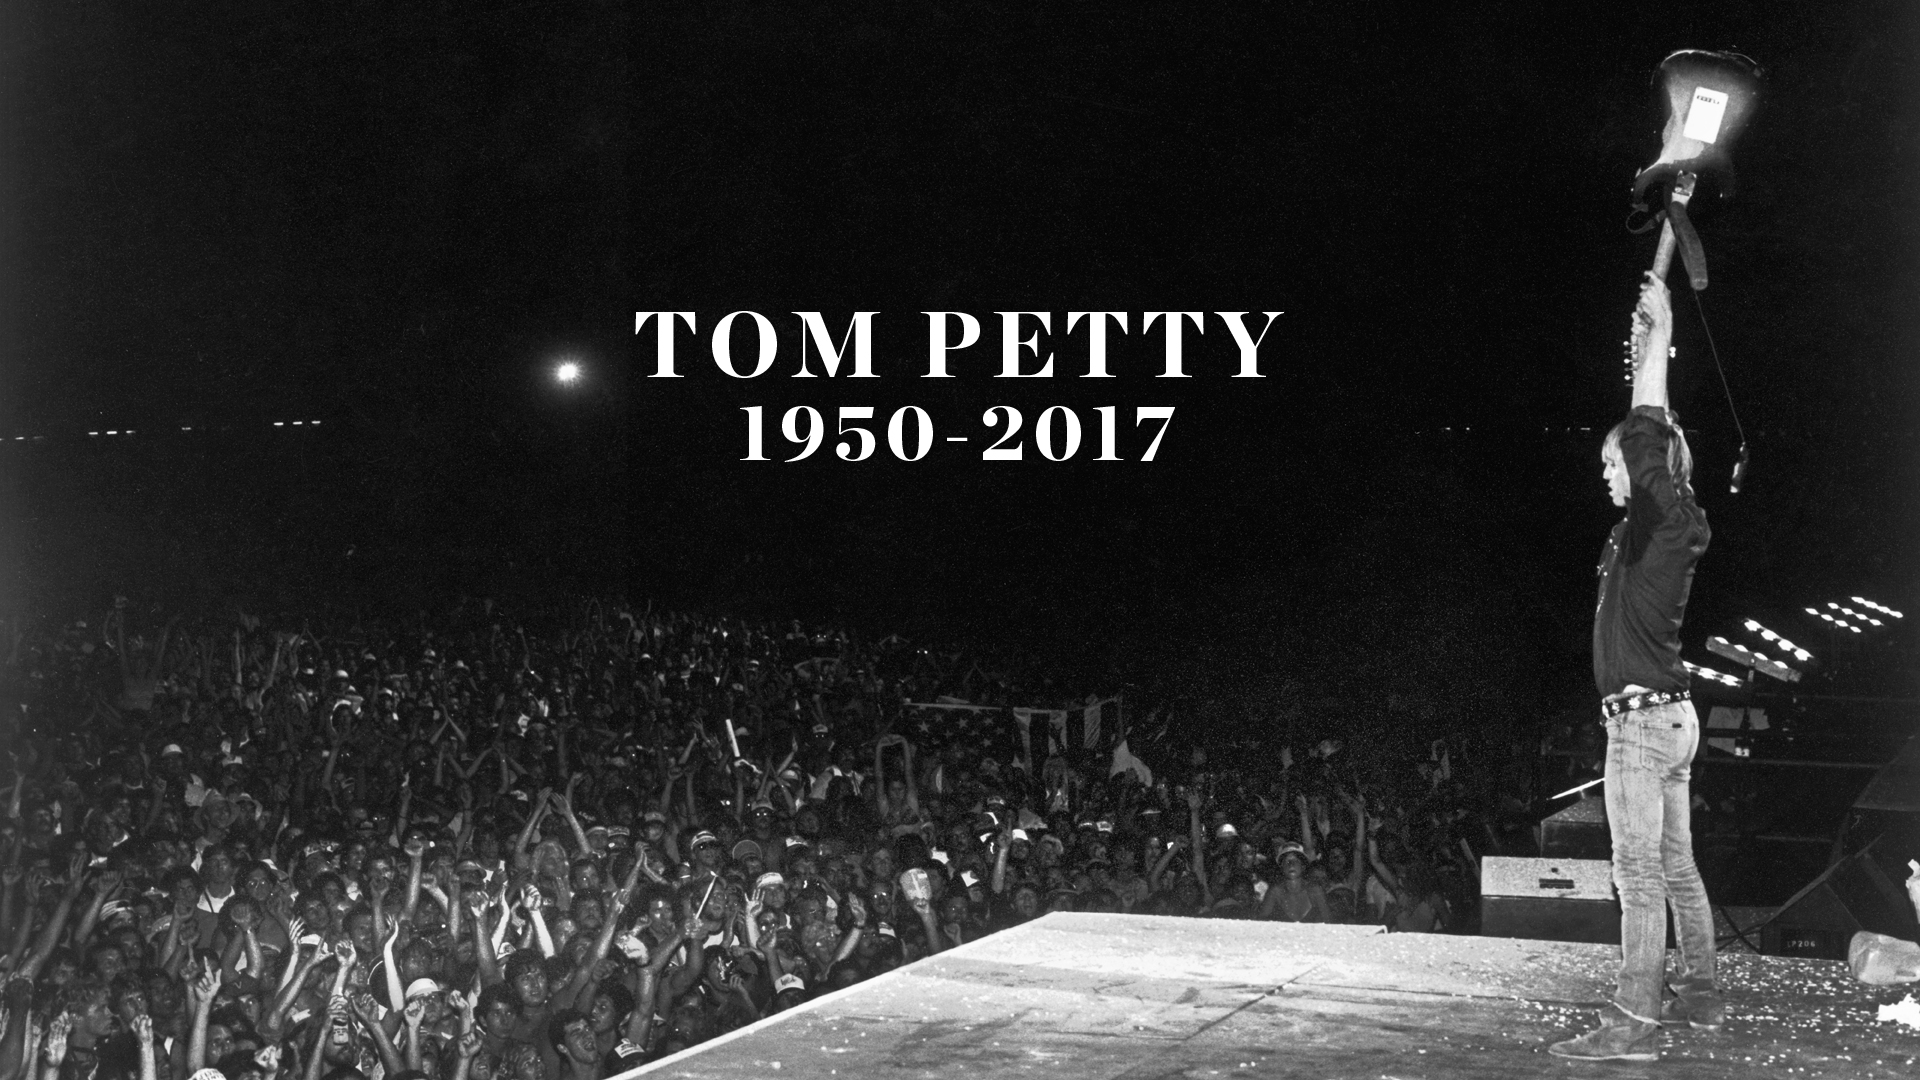 Tom Petty photos from Q! listeners